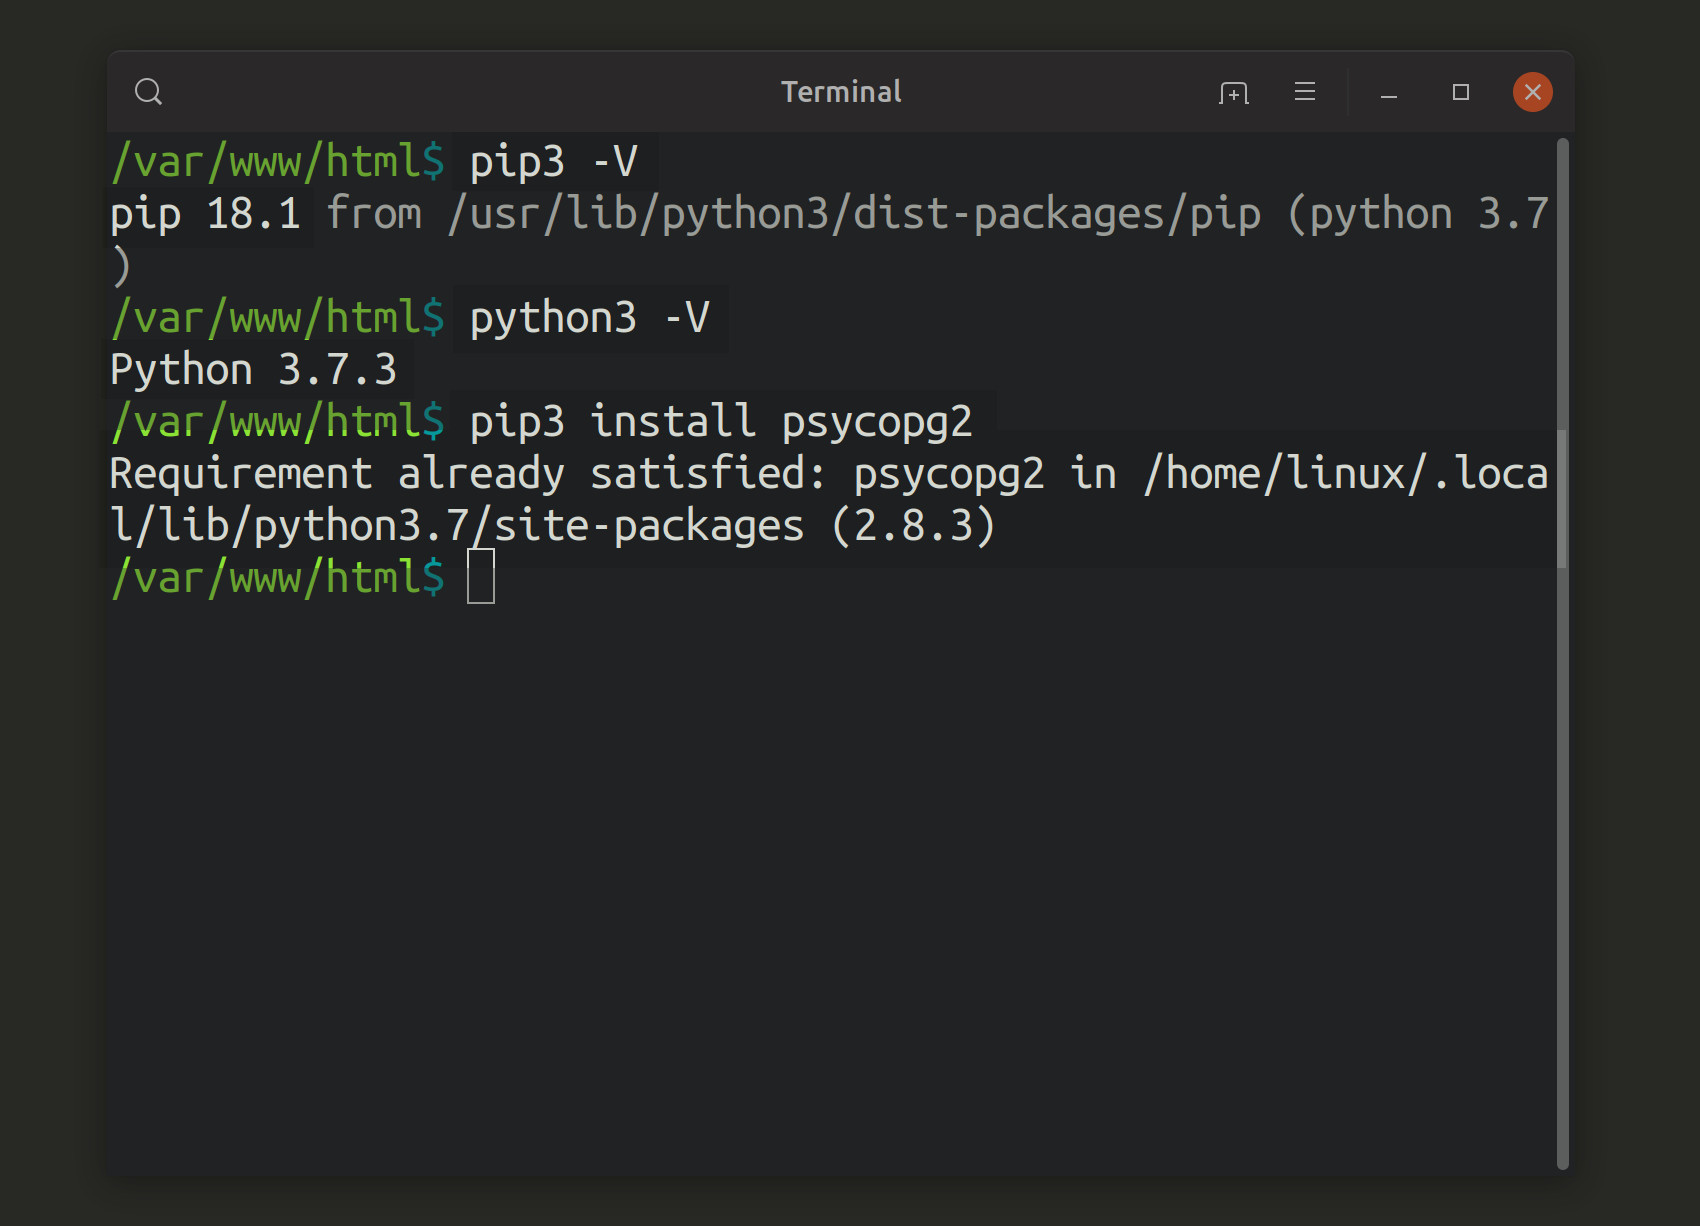 Screenshot of Python 3 and PIP3 versions in terminal and installation of psycopg2